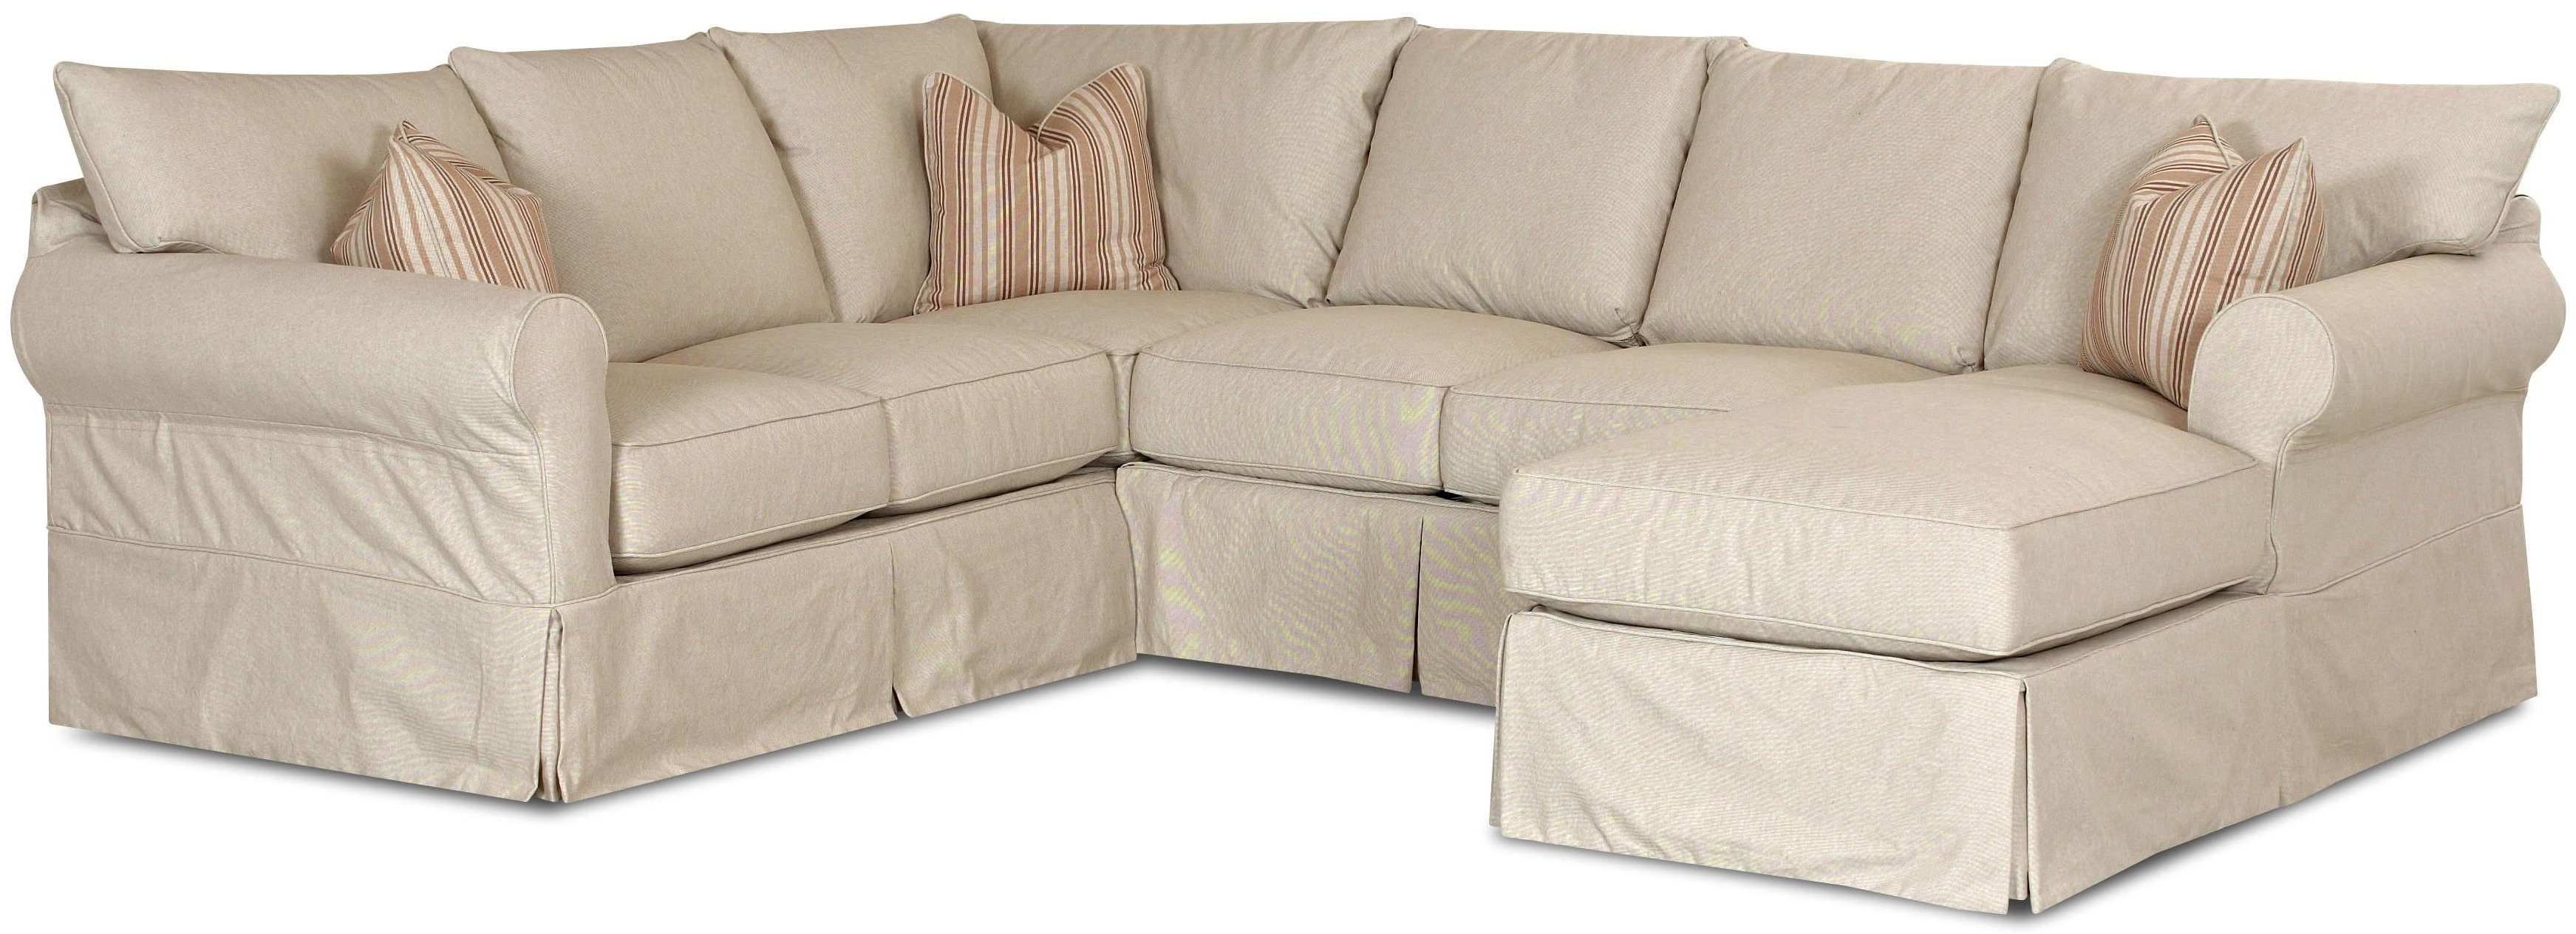 Sectional Couch Slipcovers (View 9 of 15)